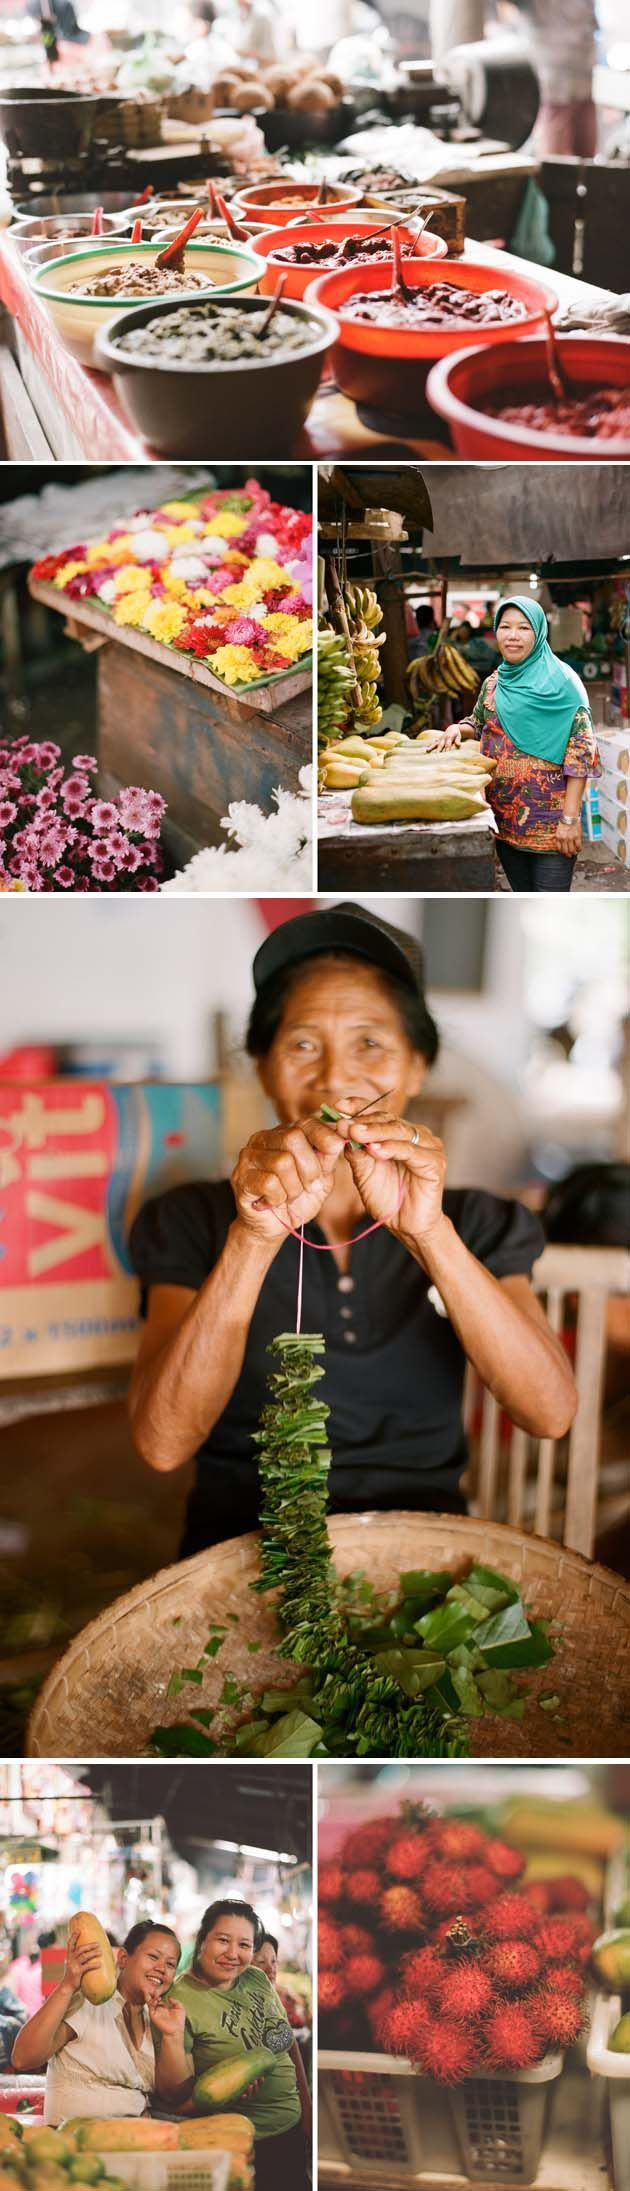 113 Best Traditional Market Images On Pinterest Flea Markets Balinese Experience The Of Bali